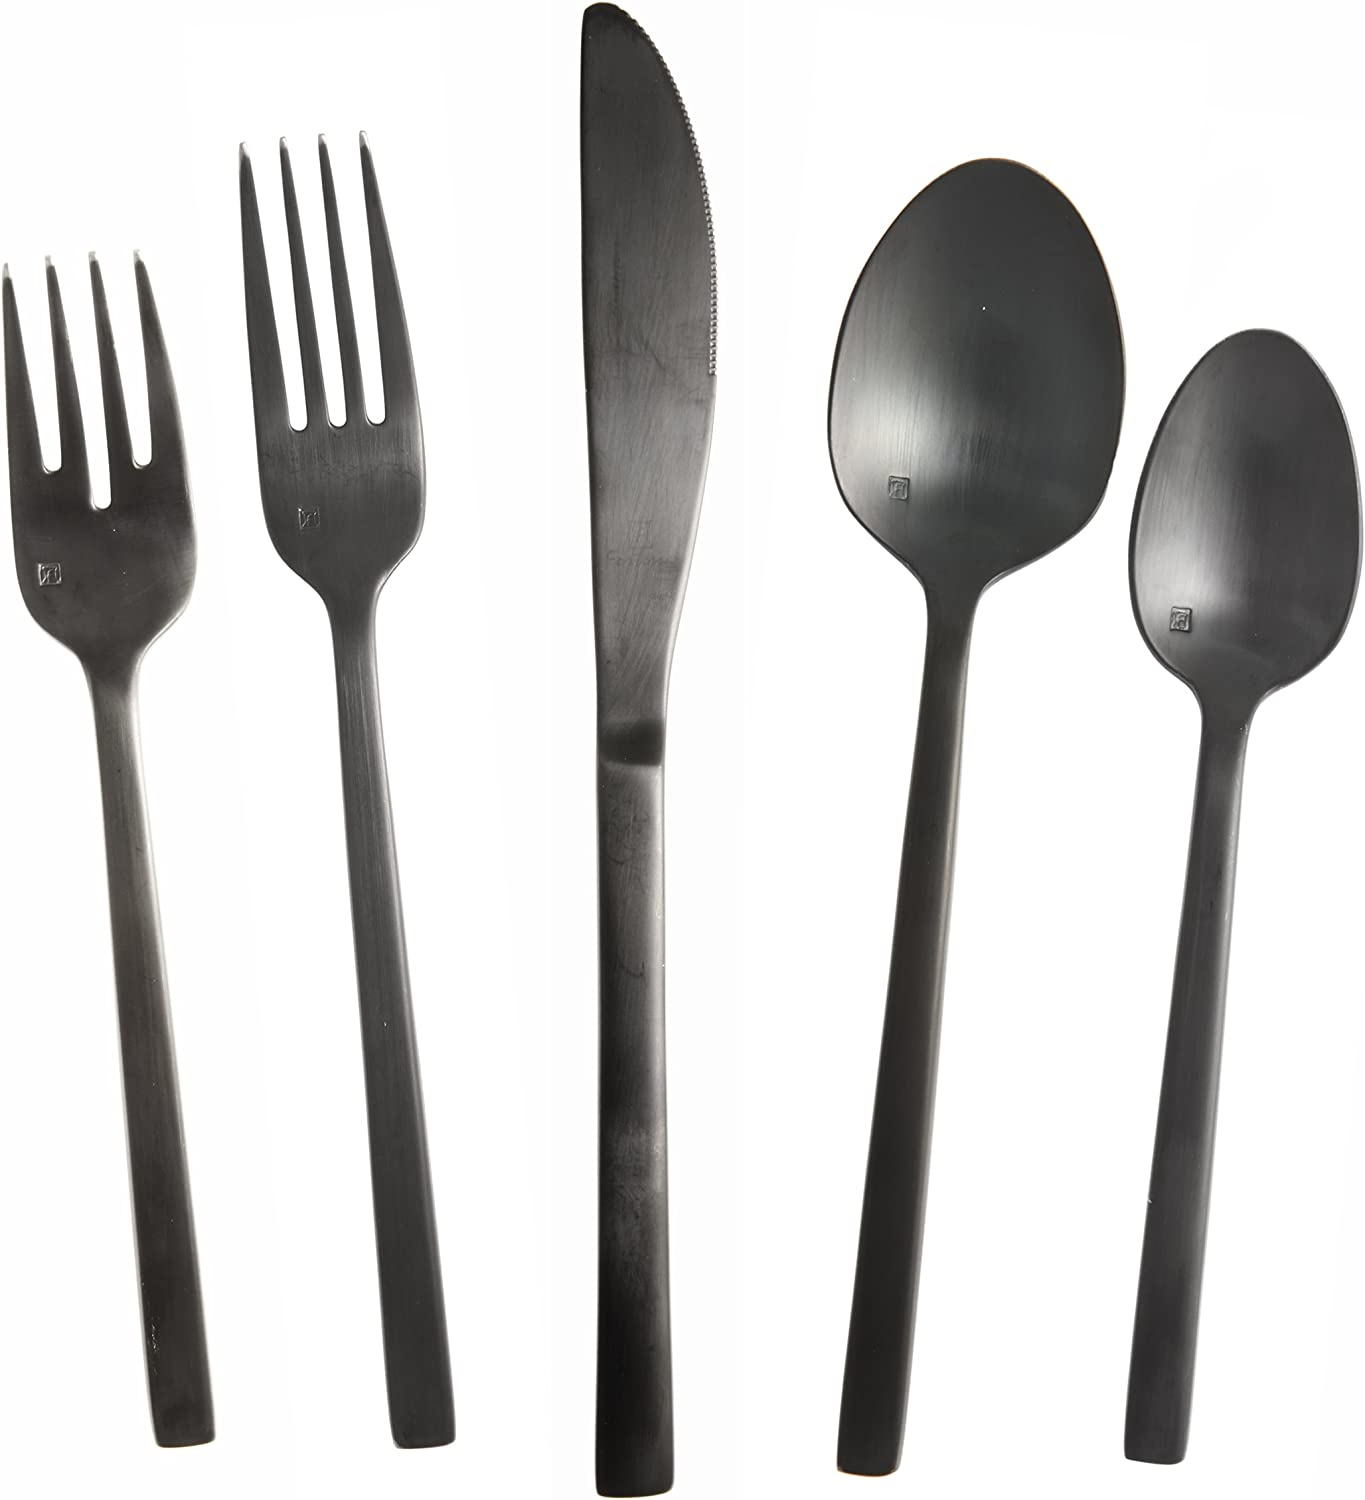 Fortessa Arezzo 18 10 Stainless Steel Flatware, 5 Piece Place Setting, Service for 1, Brushed Black